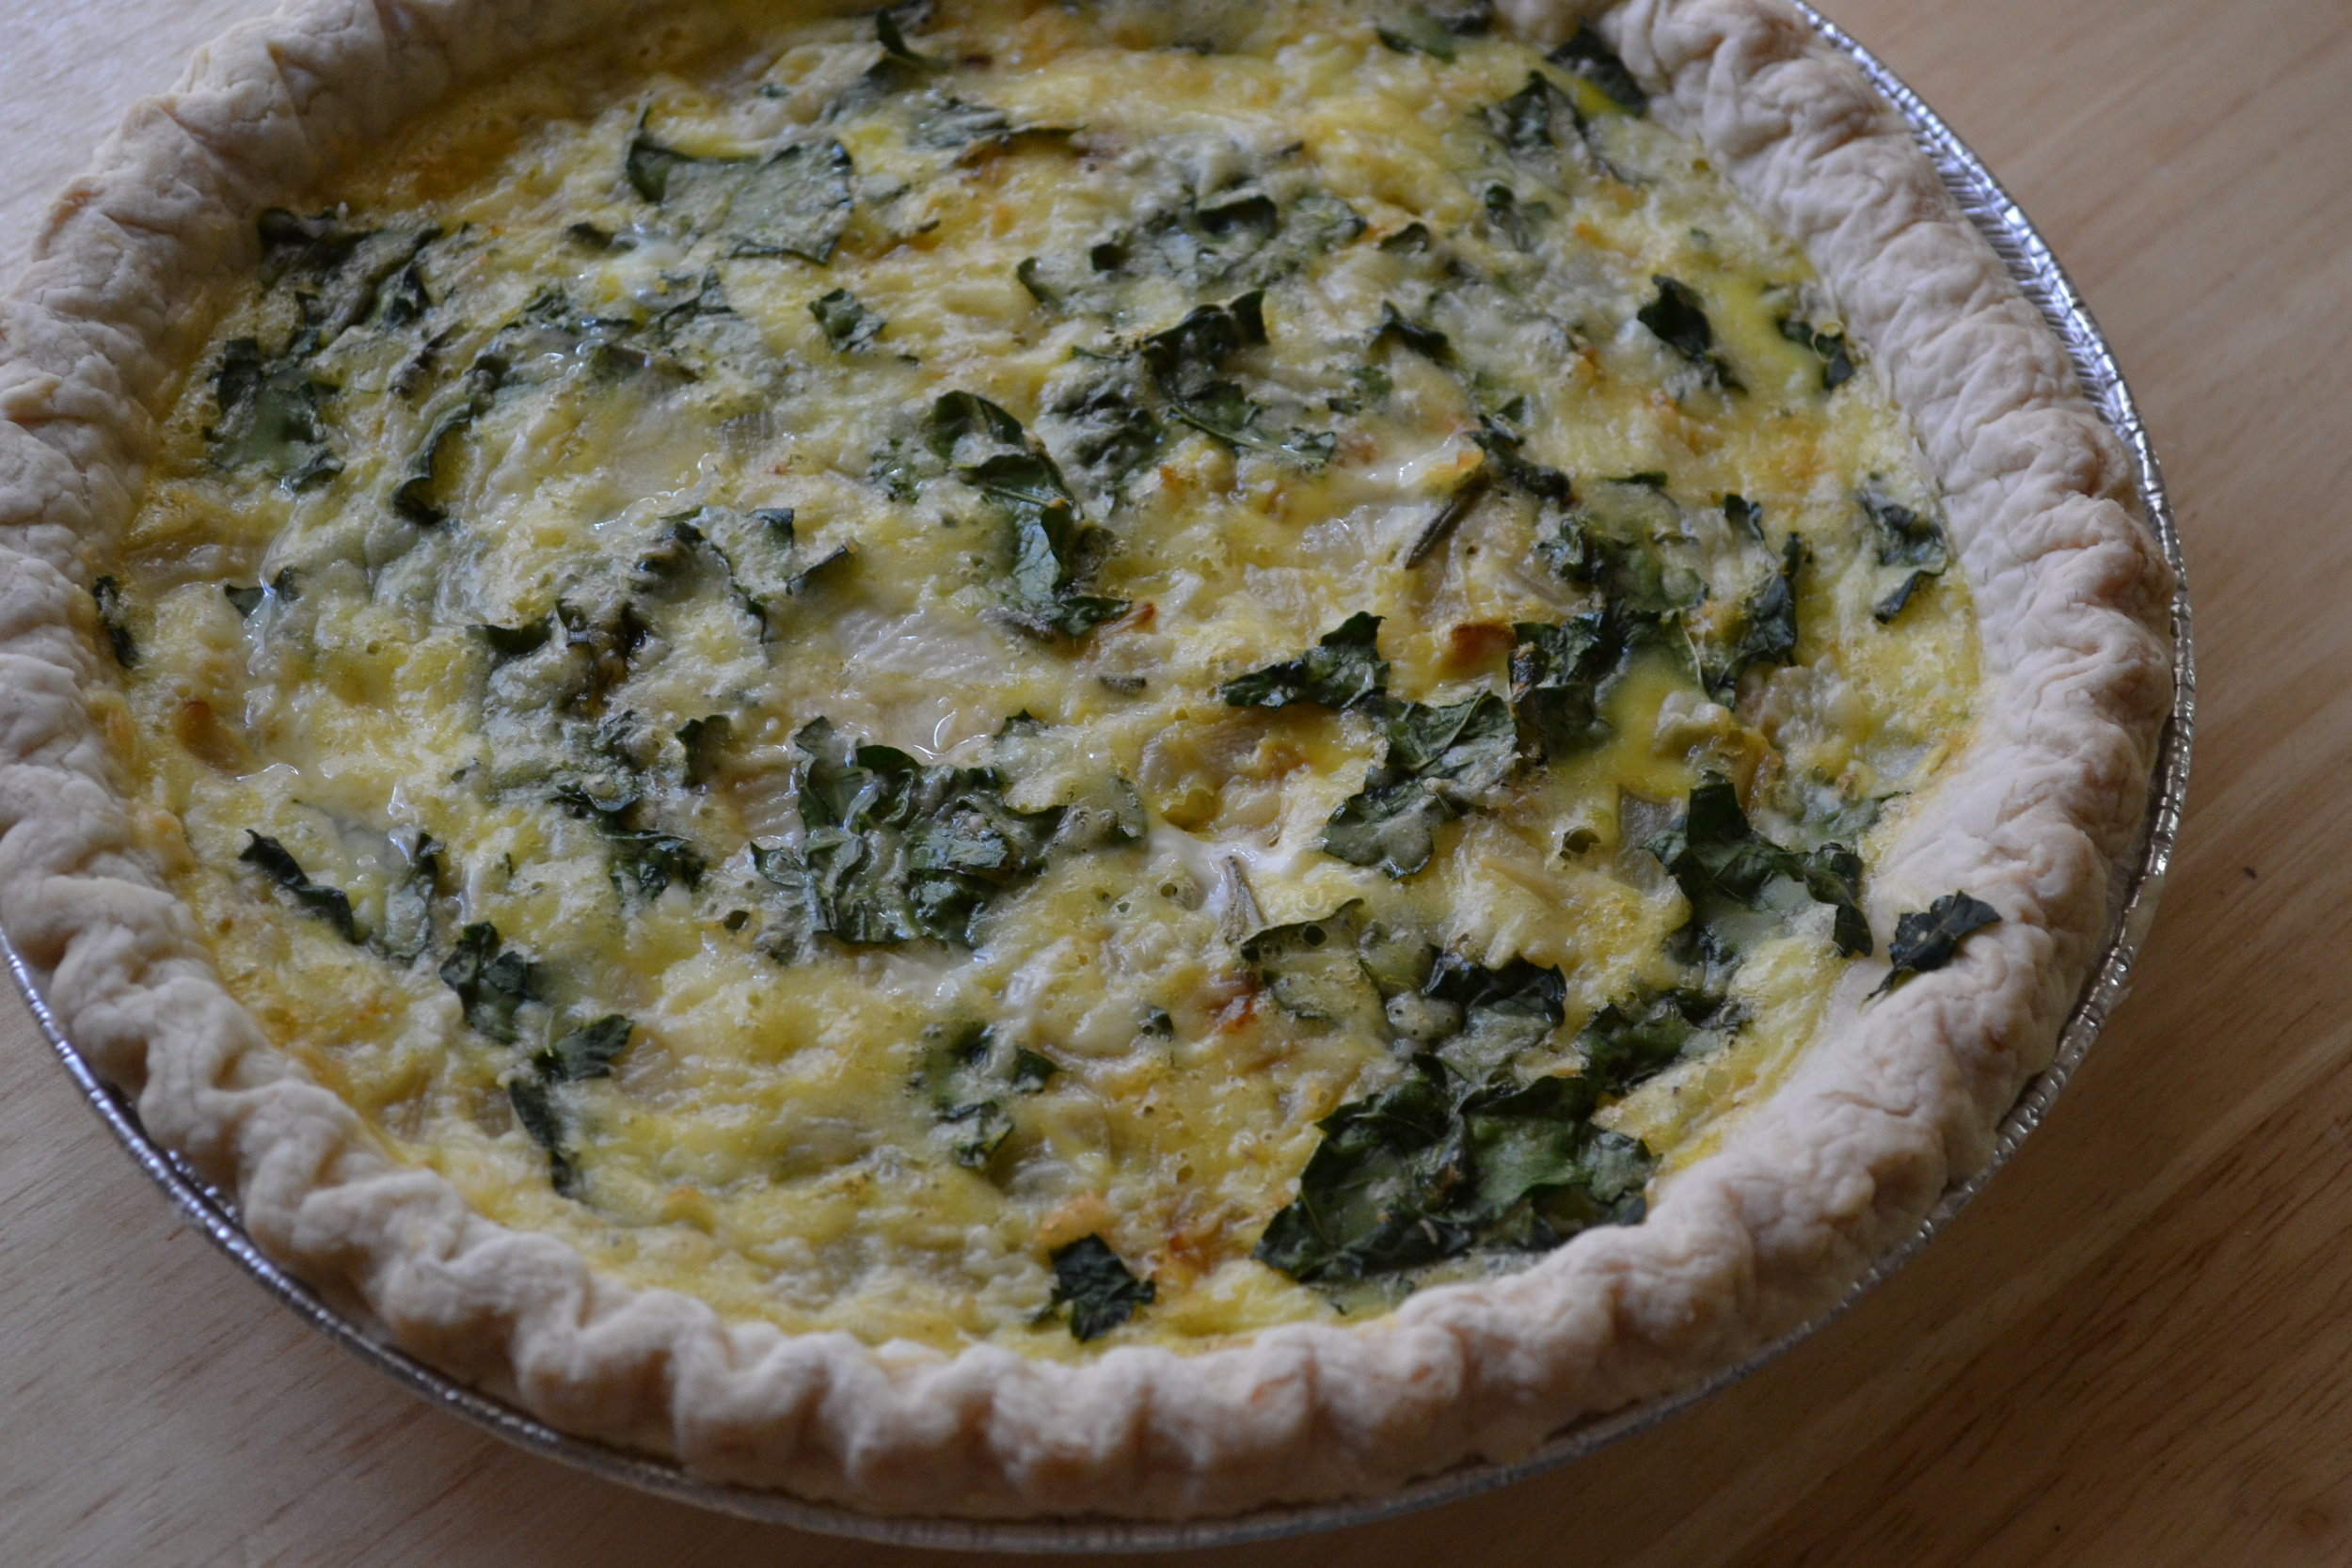 Kale and Rosemary Quiche